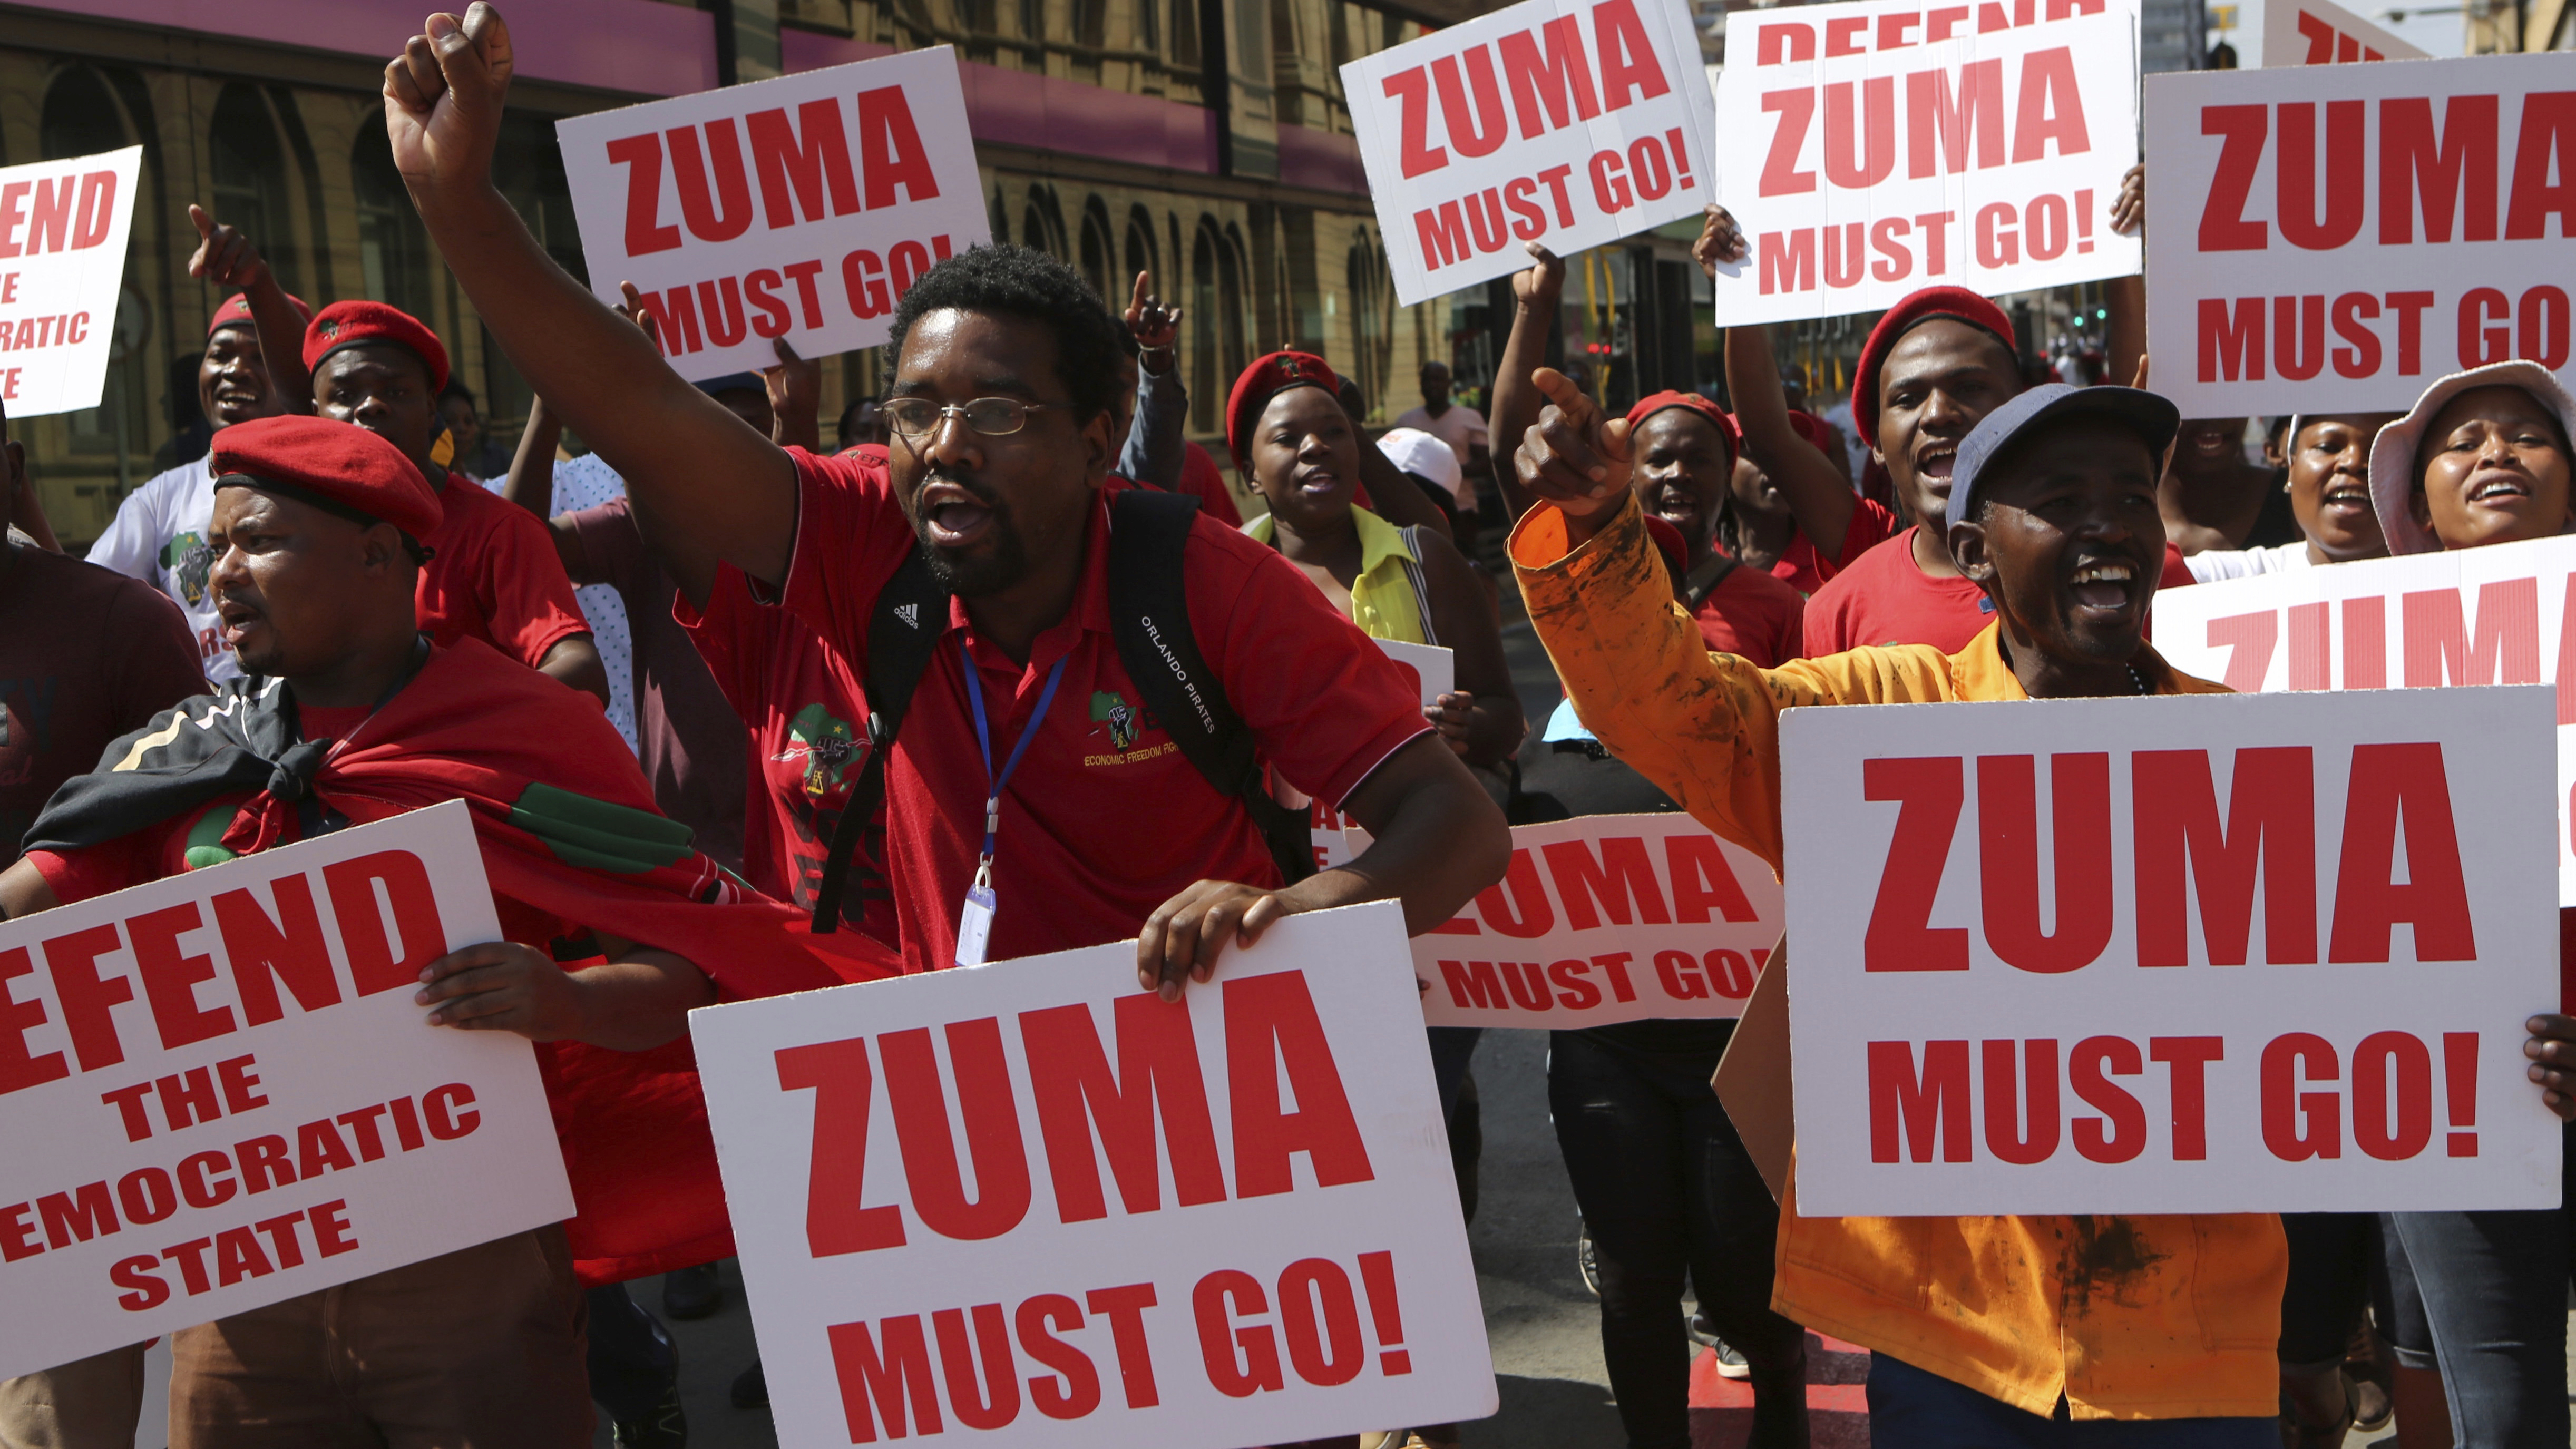 Following the release of the State Capture report and public protests, pressure mounts for South Africa's President Jacob Zuma to step down